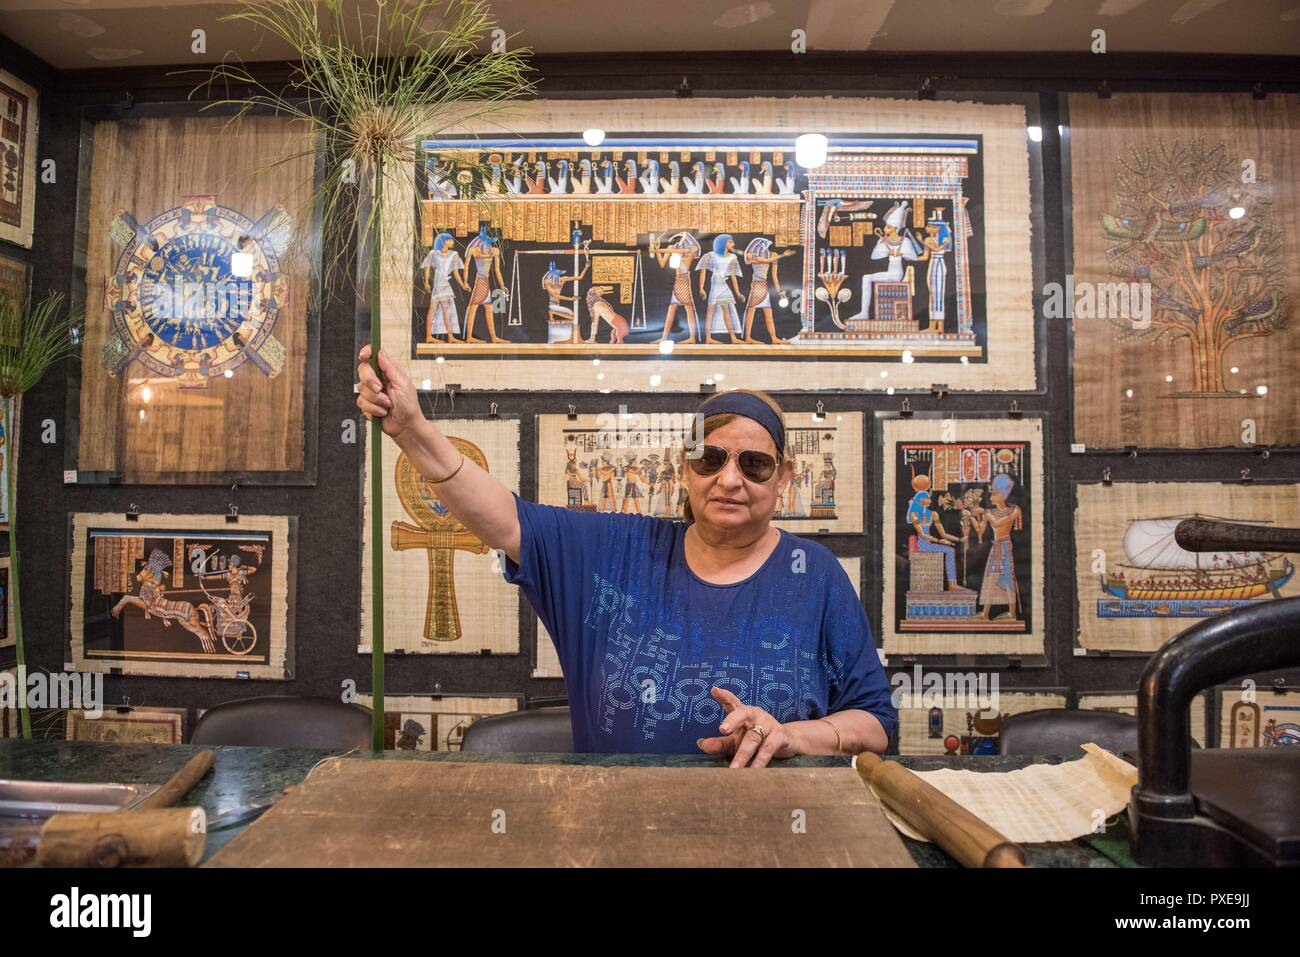 Giza, Egypt. 20th Oct, 2018. A shop assistant shows the papyrus plant which is used for making papyrus at a souvenir shop in Giza, Egypt, on Oct. 20, 2018. Made from papyrus plant stems, the papyrus was used for writing and drawing on by ancient Egyptians thousands years ago. Nowadays, with the ancient Egyptian writings and Pharaonic drawings, papyrus has always been an interesting souvenir bought by tourists in Egypt. Credit: Meng Tao/Xinhua/Alamy Live News - Stock Image